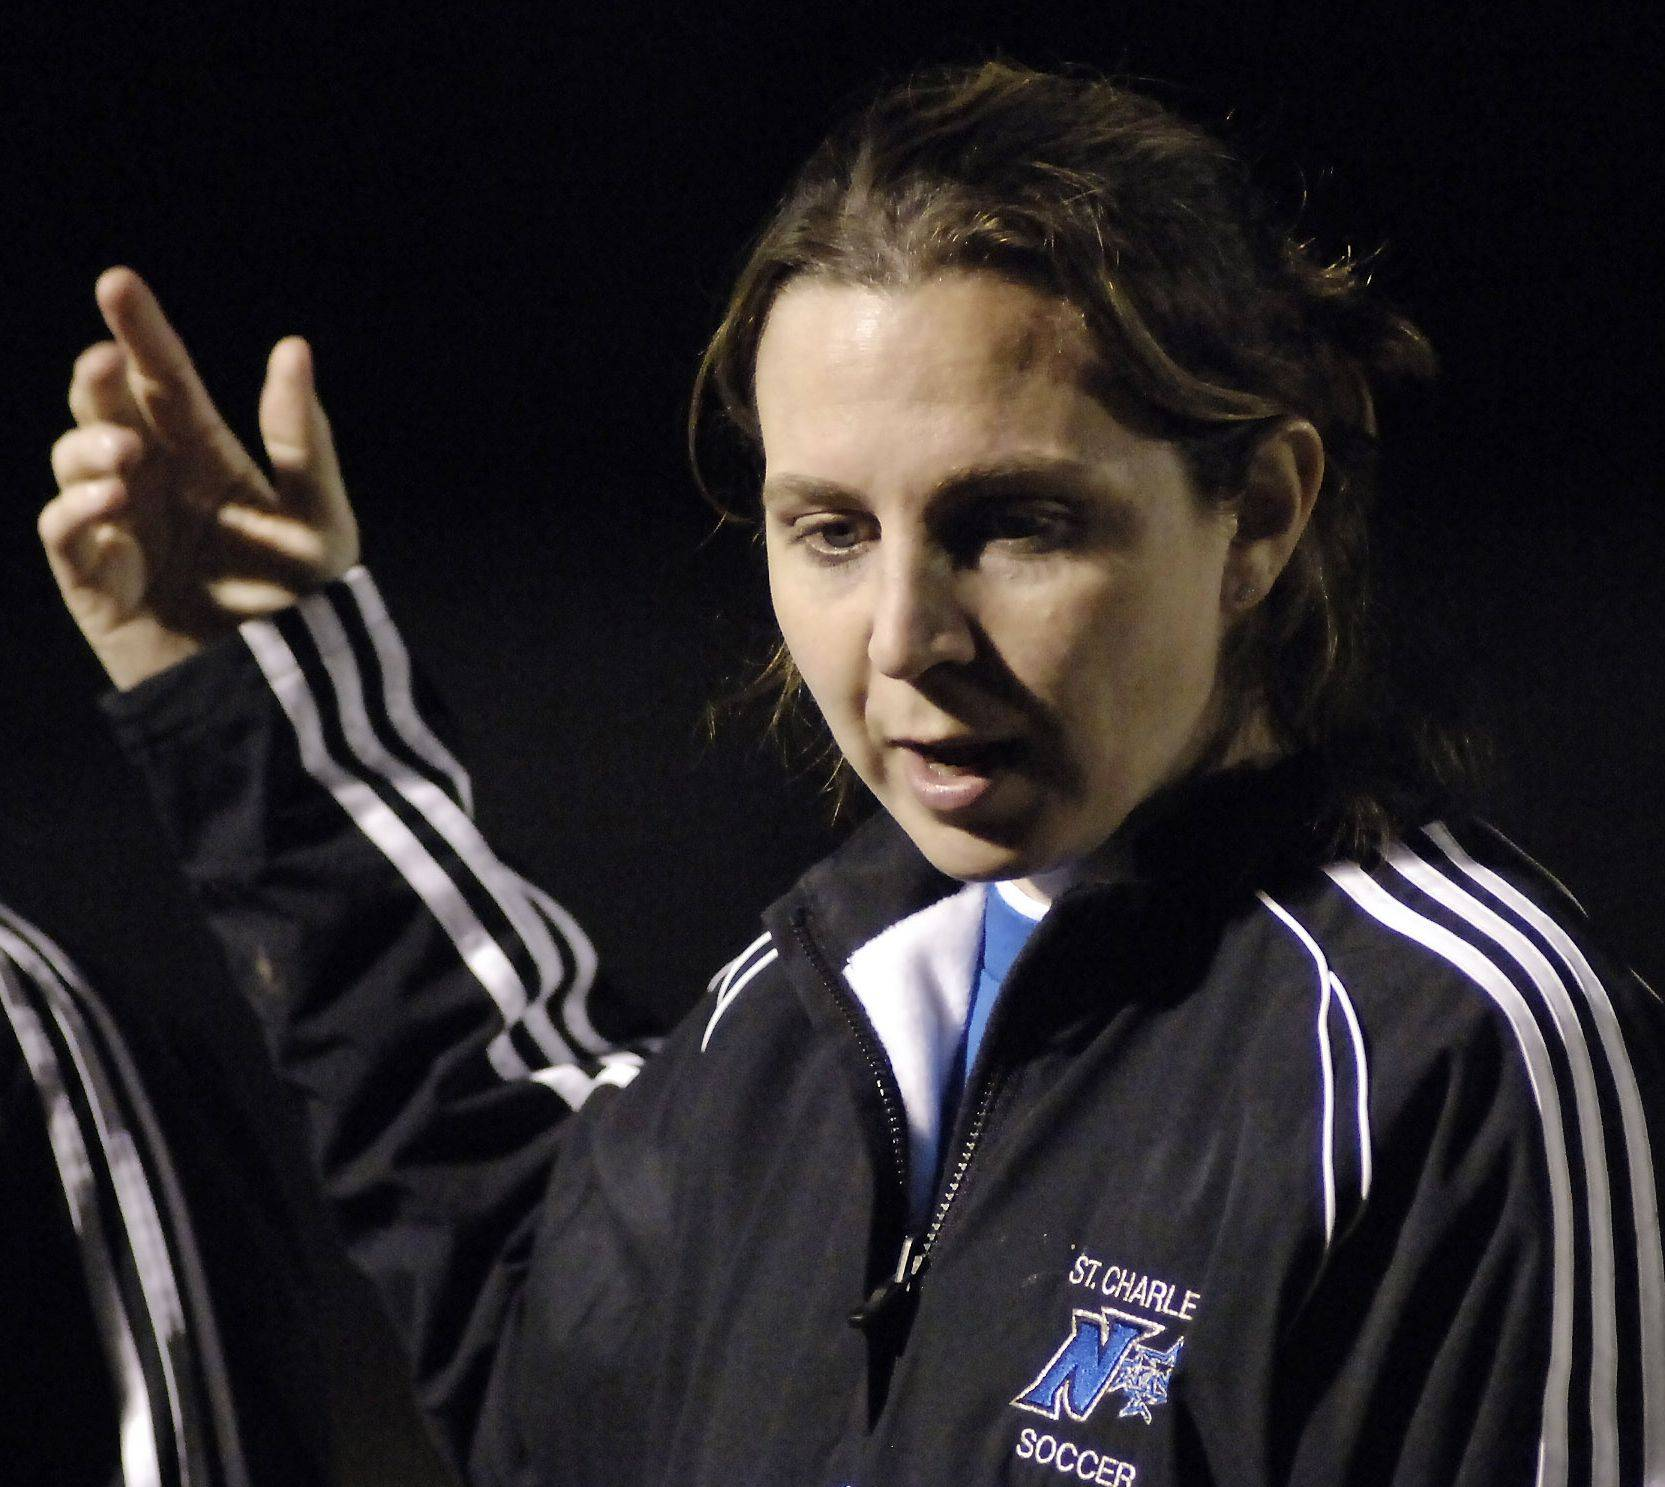 Ruth Vostal, St. Charles North's girls soccer coach, is one of four going into the St. Charles East Hall of Fame with the Jodie Harrison Lifetime Achievement award.